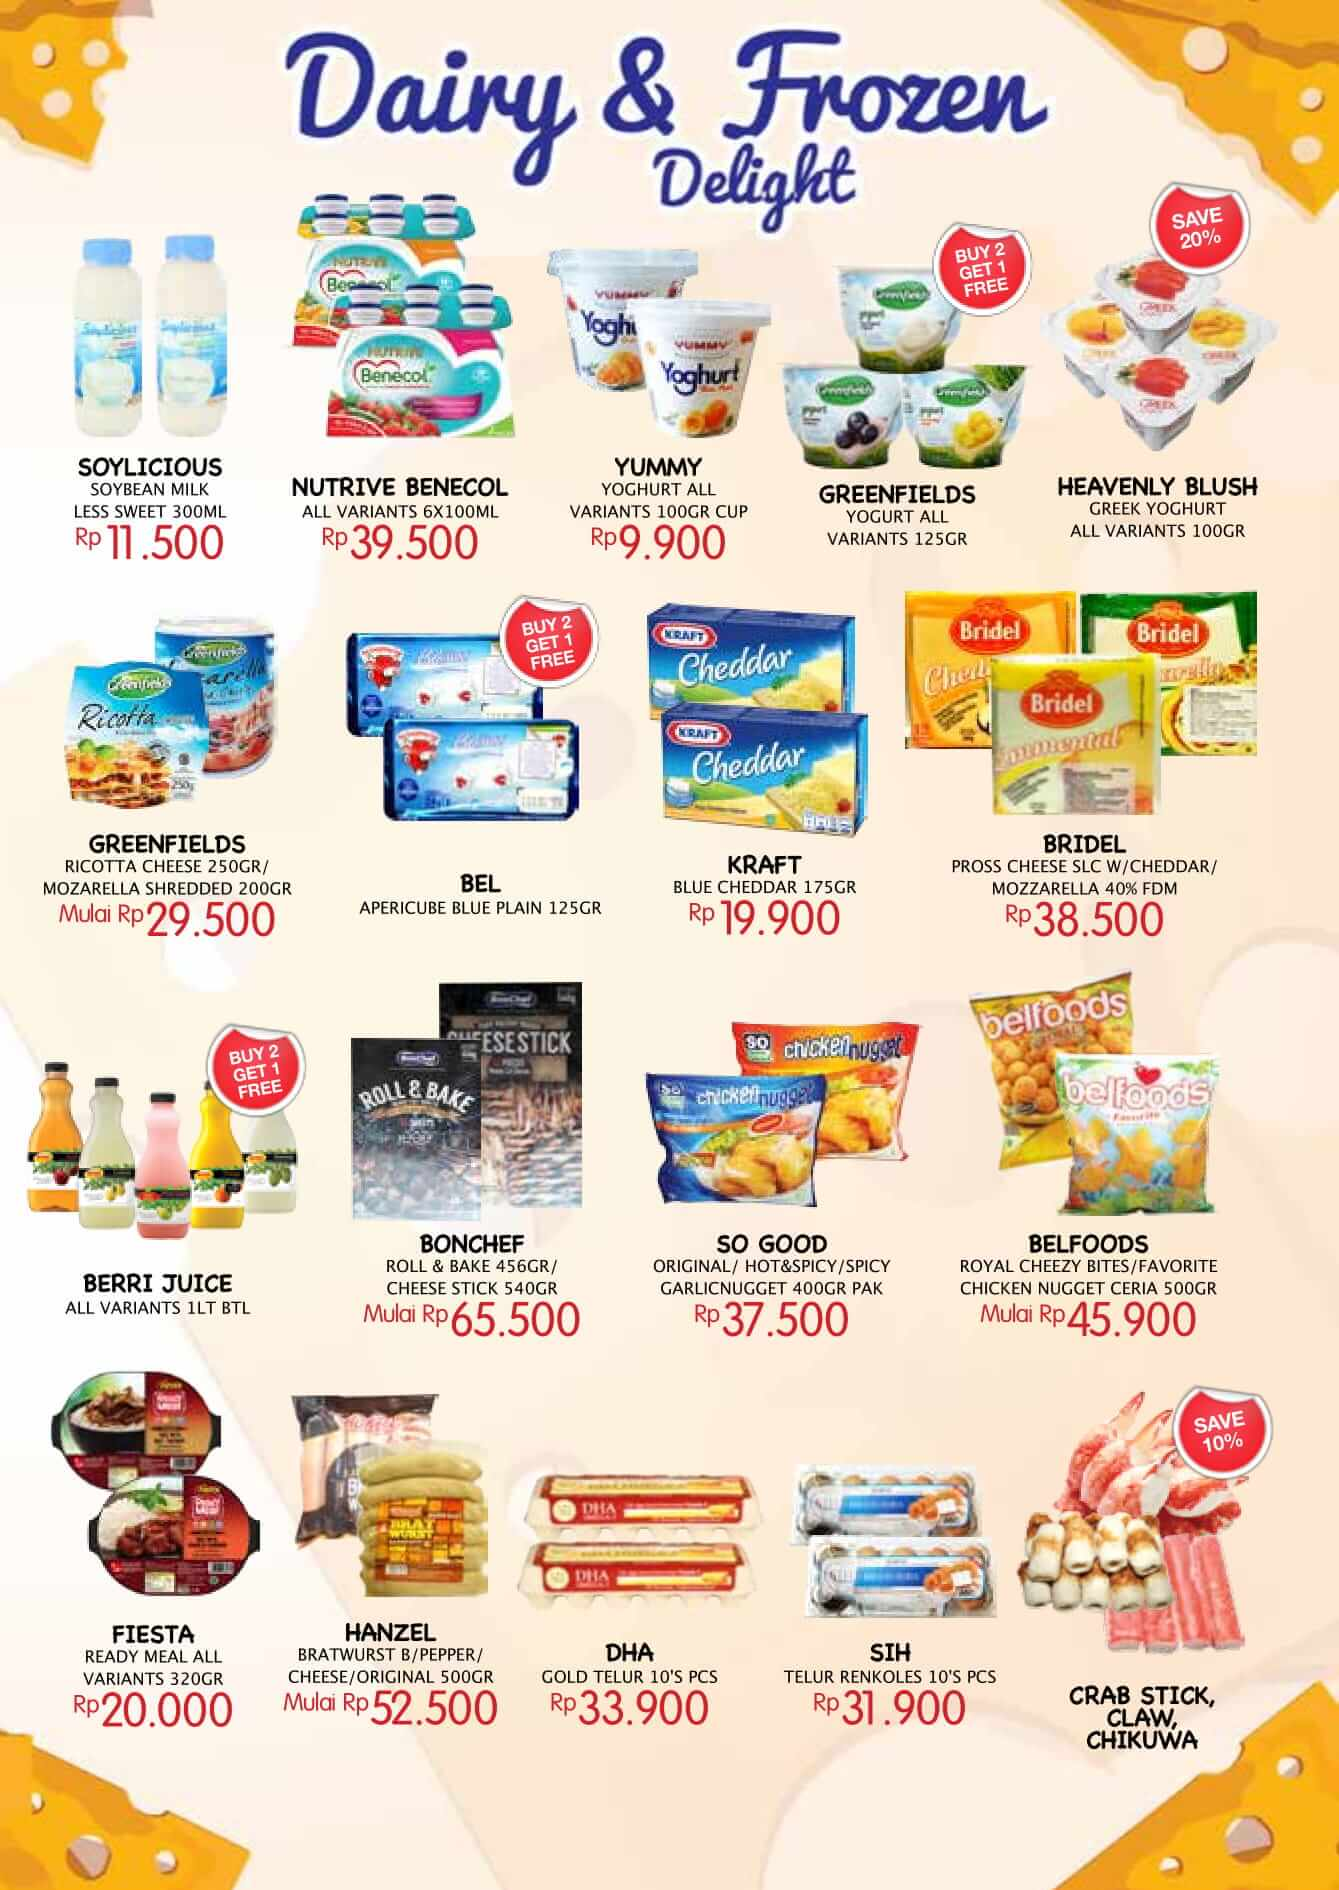 Katalog Farmers Market 18 May 31 Belfoods Favorite Chicken Nugget Ceria Type To Search Item In This Catalogue